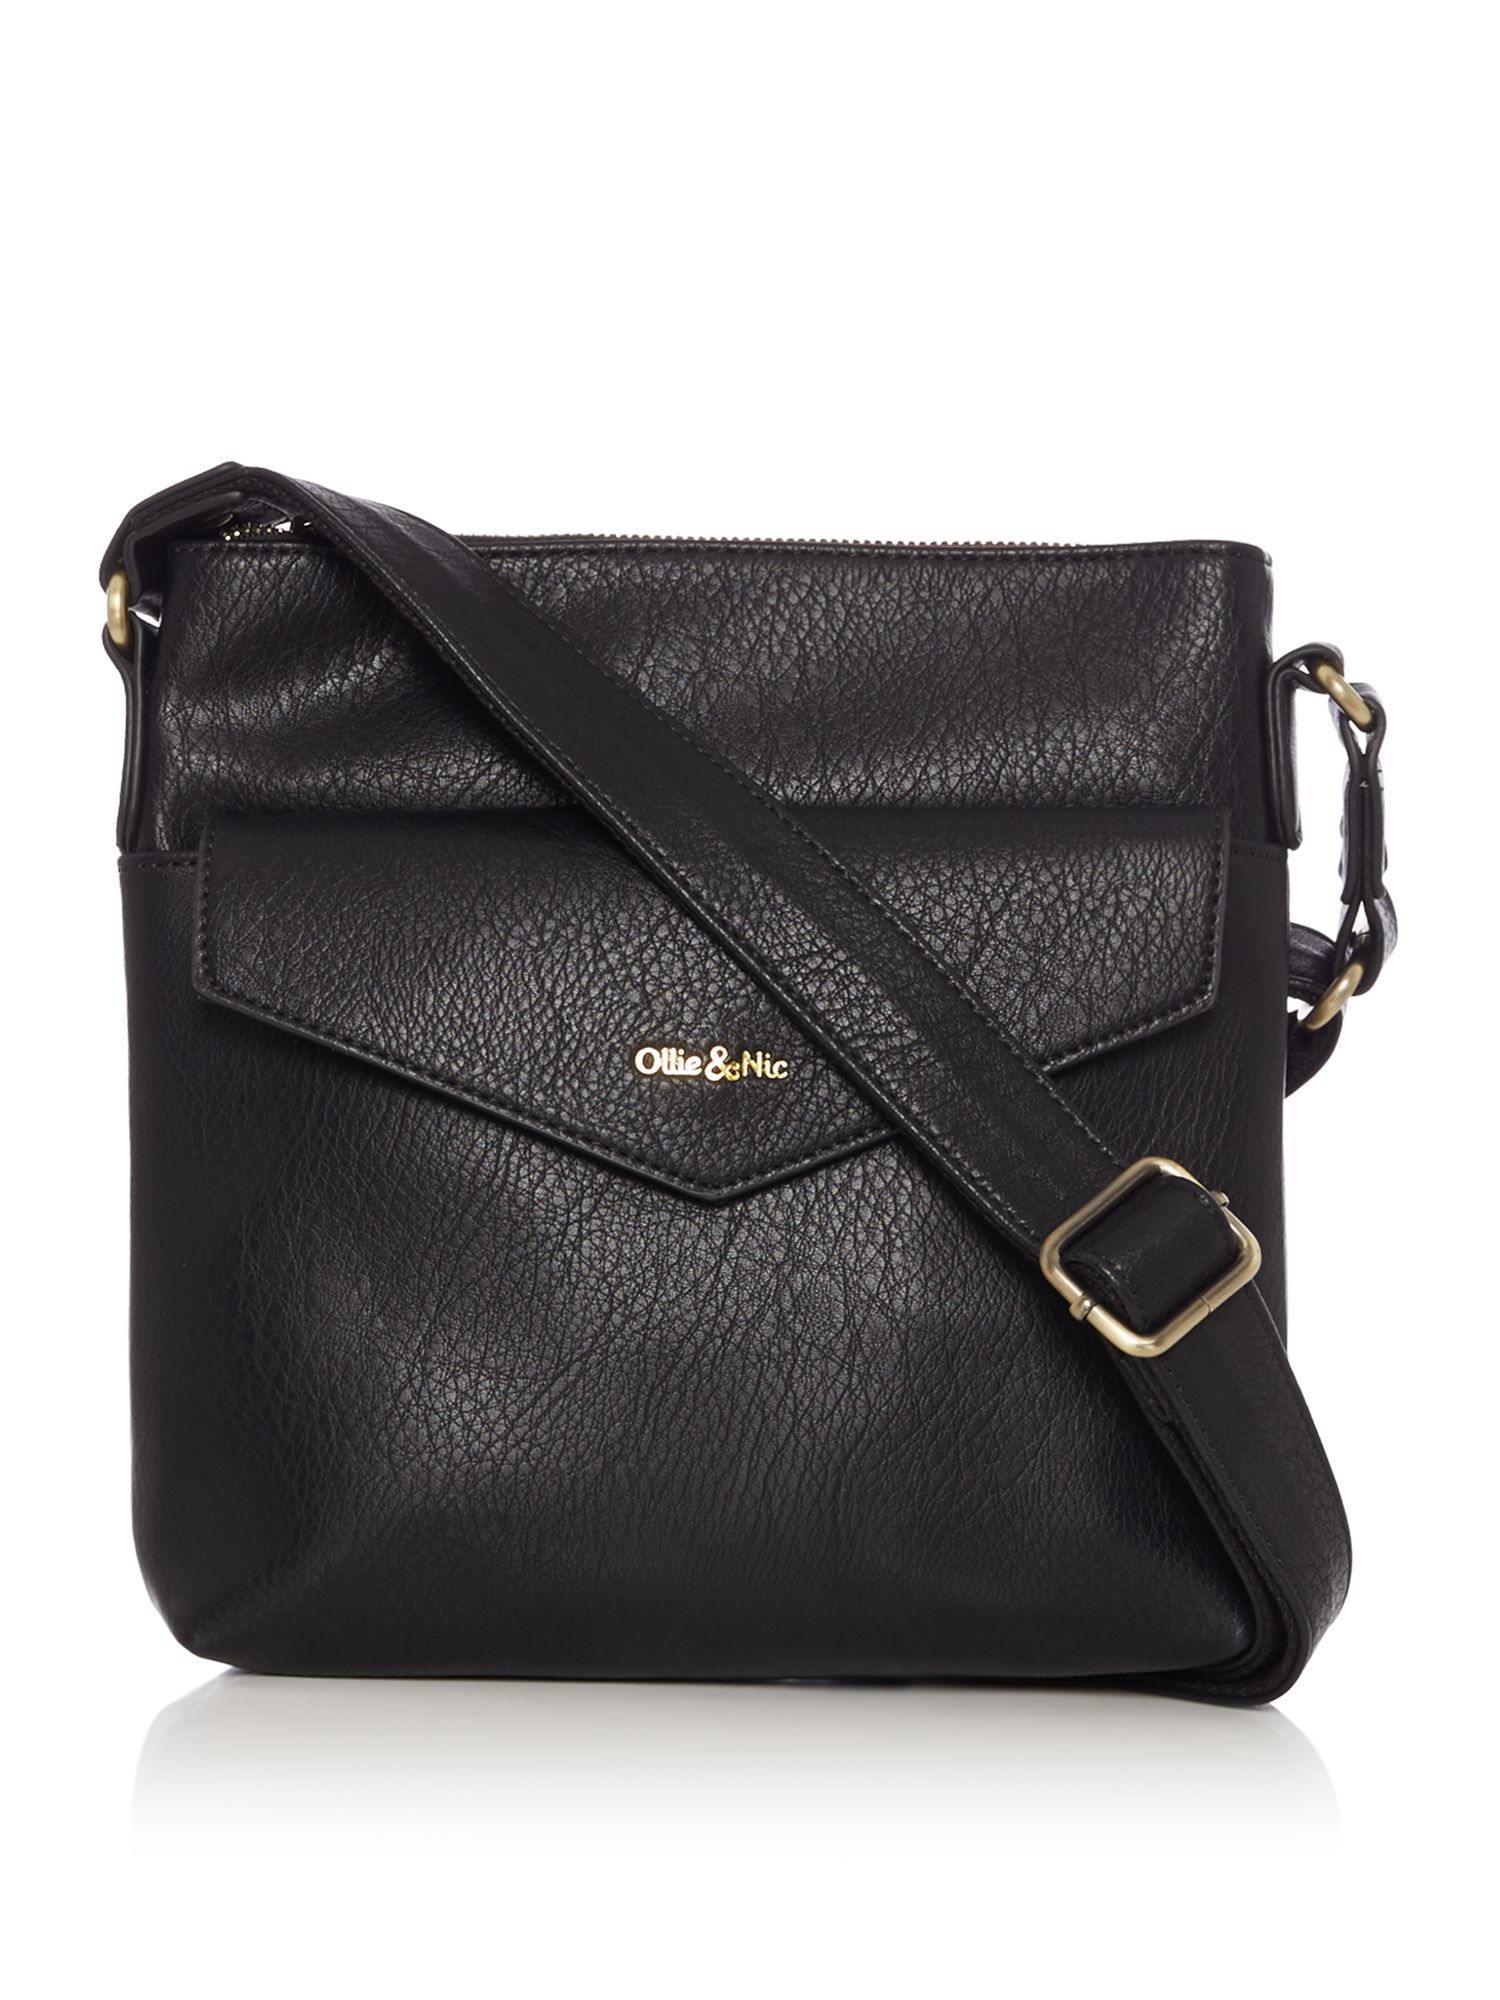 Ollie & Nic Eddy crossbody, Black